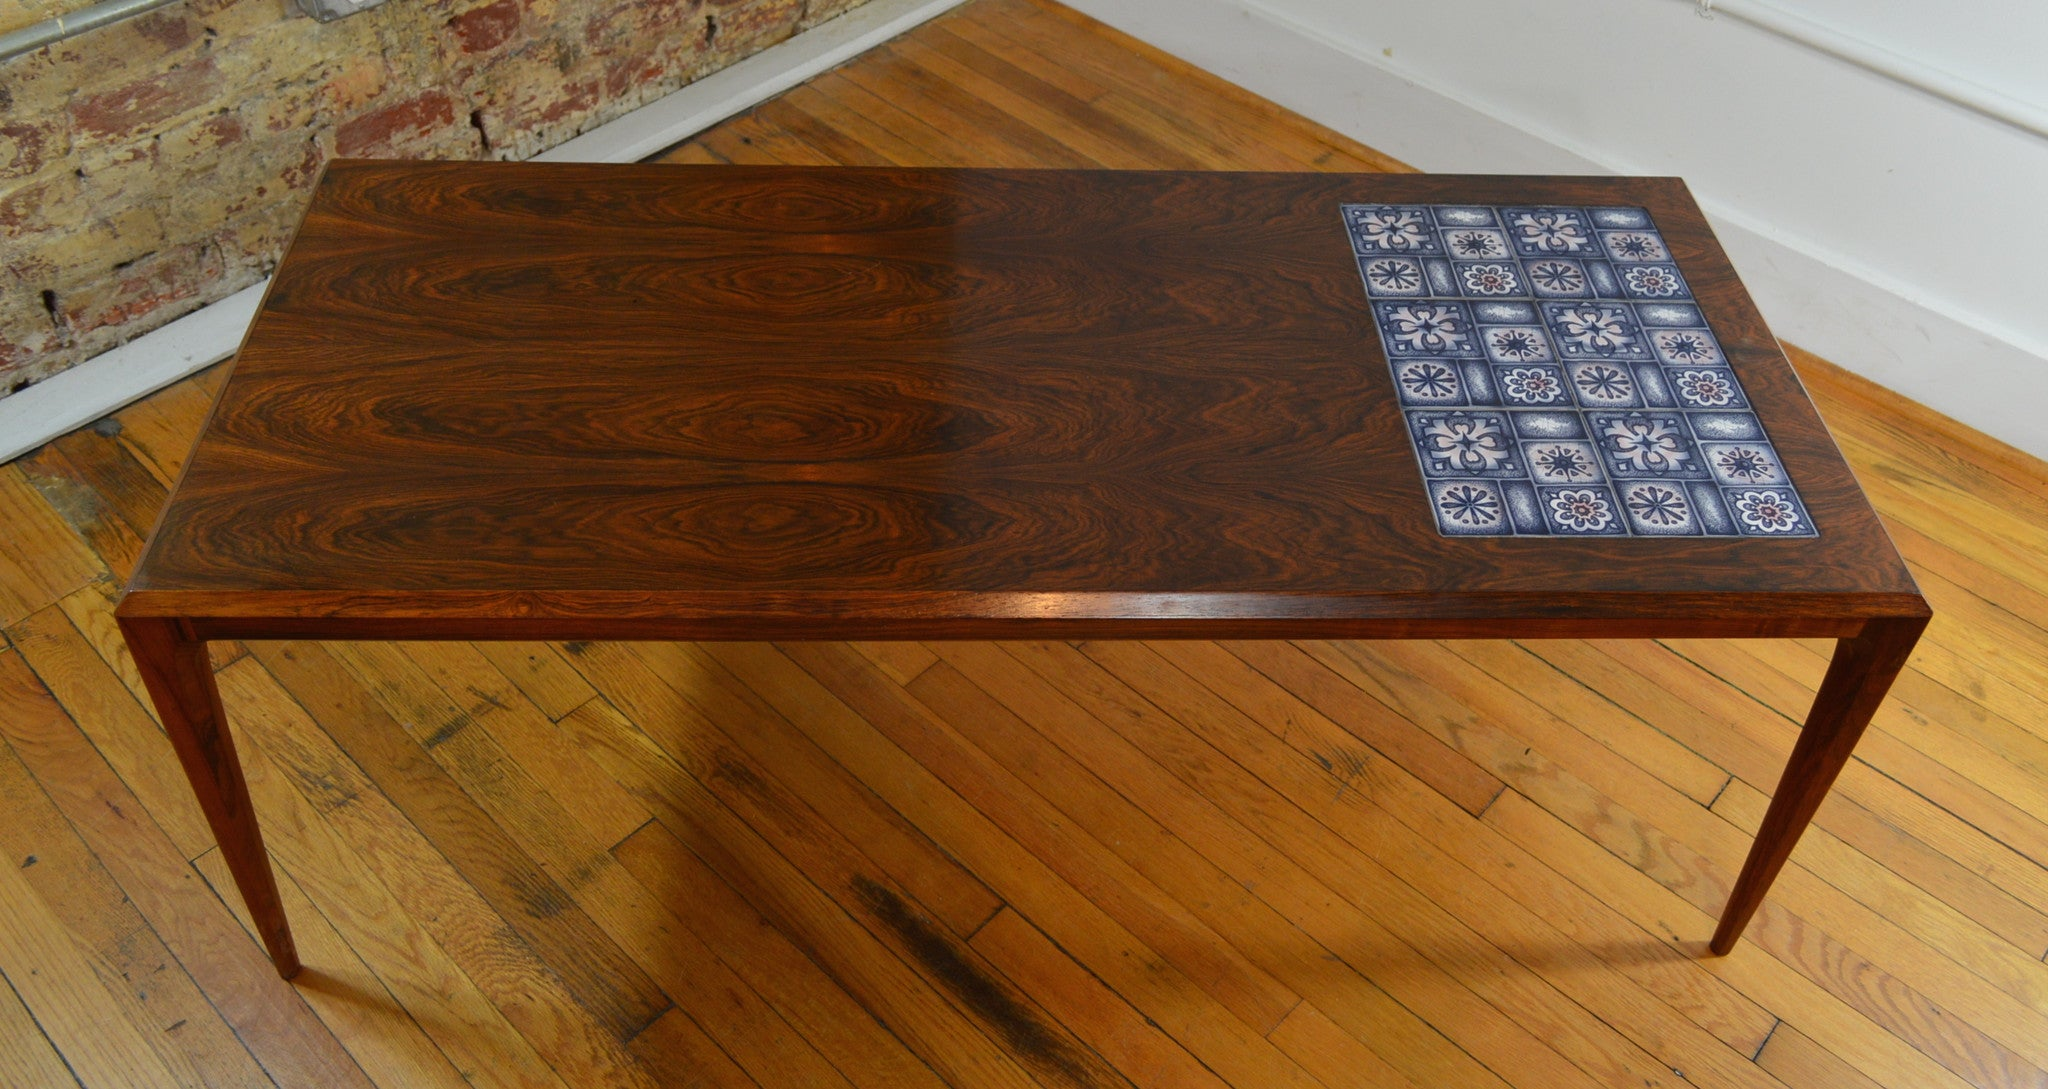 Rosewood and Tile Coffee Table by Johannes Andersen with Royal